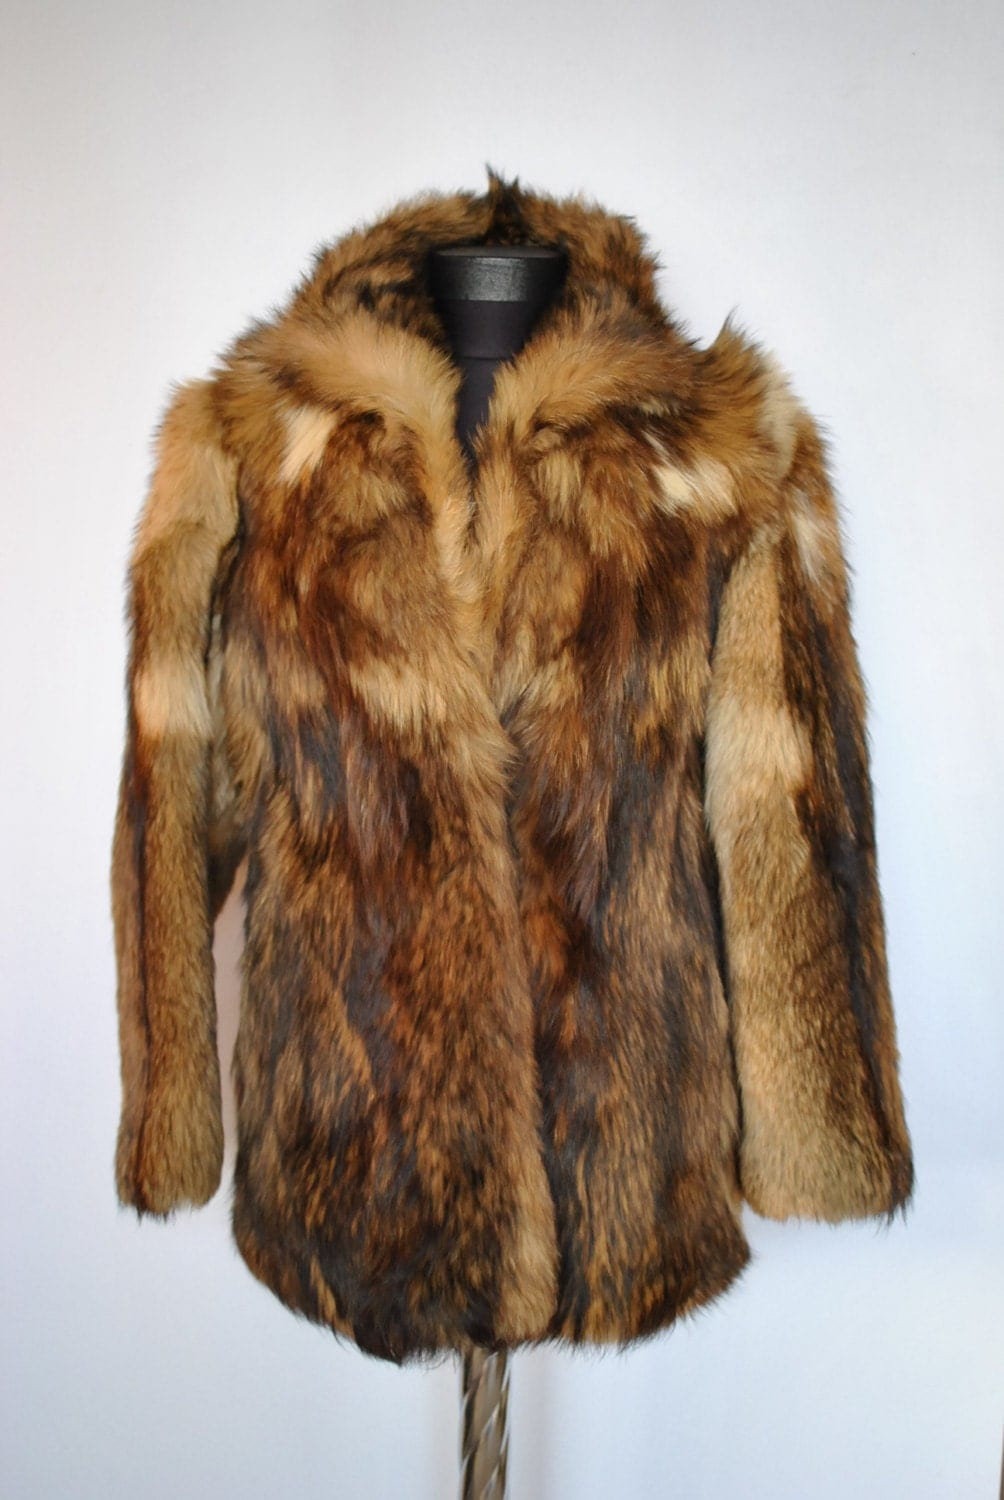 Feissifur is a dedicated online fur store that has been selling various styles of real fur coat, jacket and fur accessories to worldwide customers since